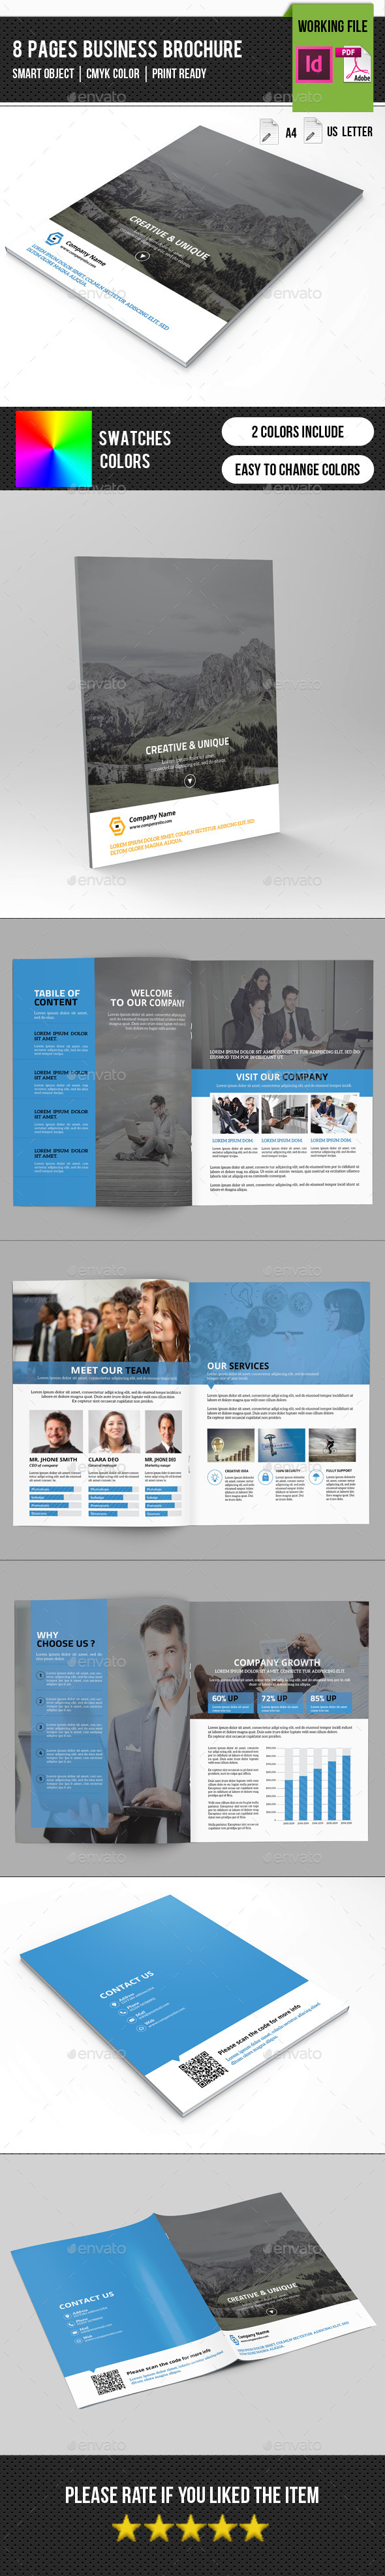 Corporate Brochure 8 Pages-V259 - Corporate Brochures